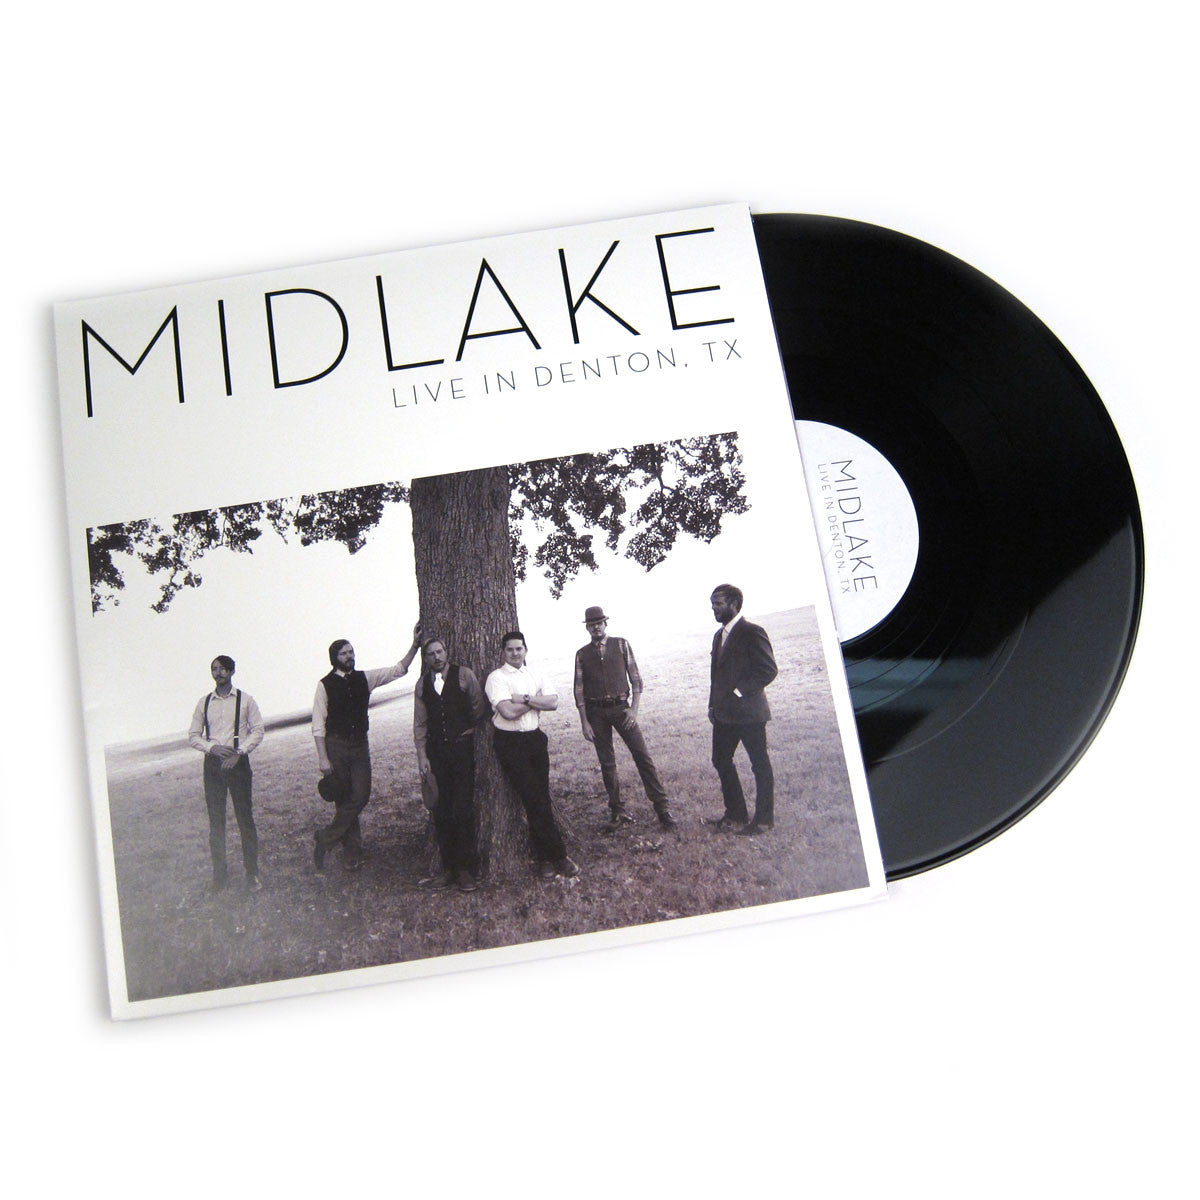 "Midlake: Live in Denton, TX Vinyl 12"" (Record Store Day)"